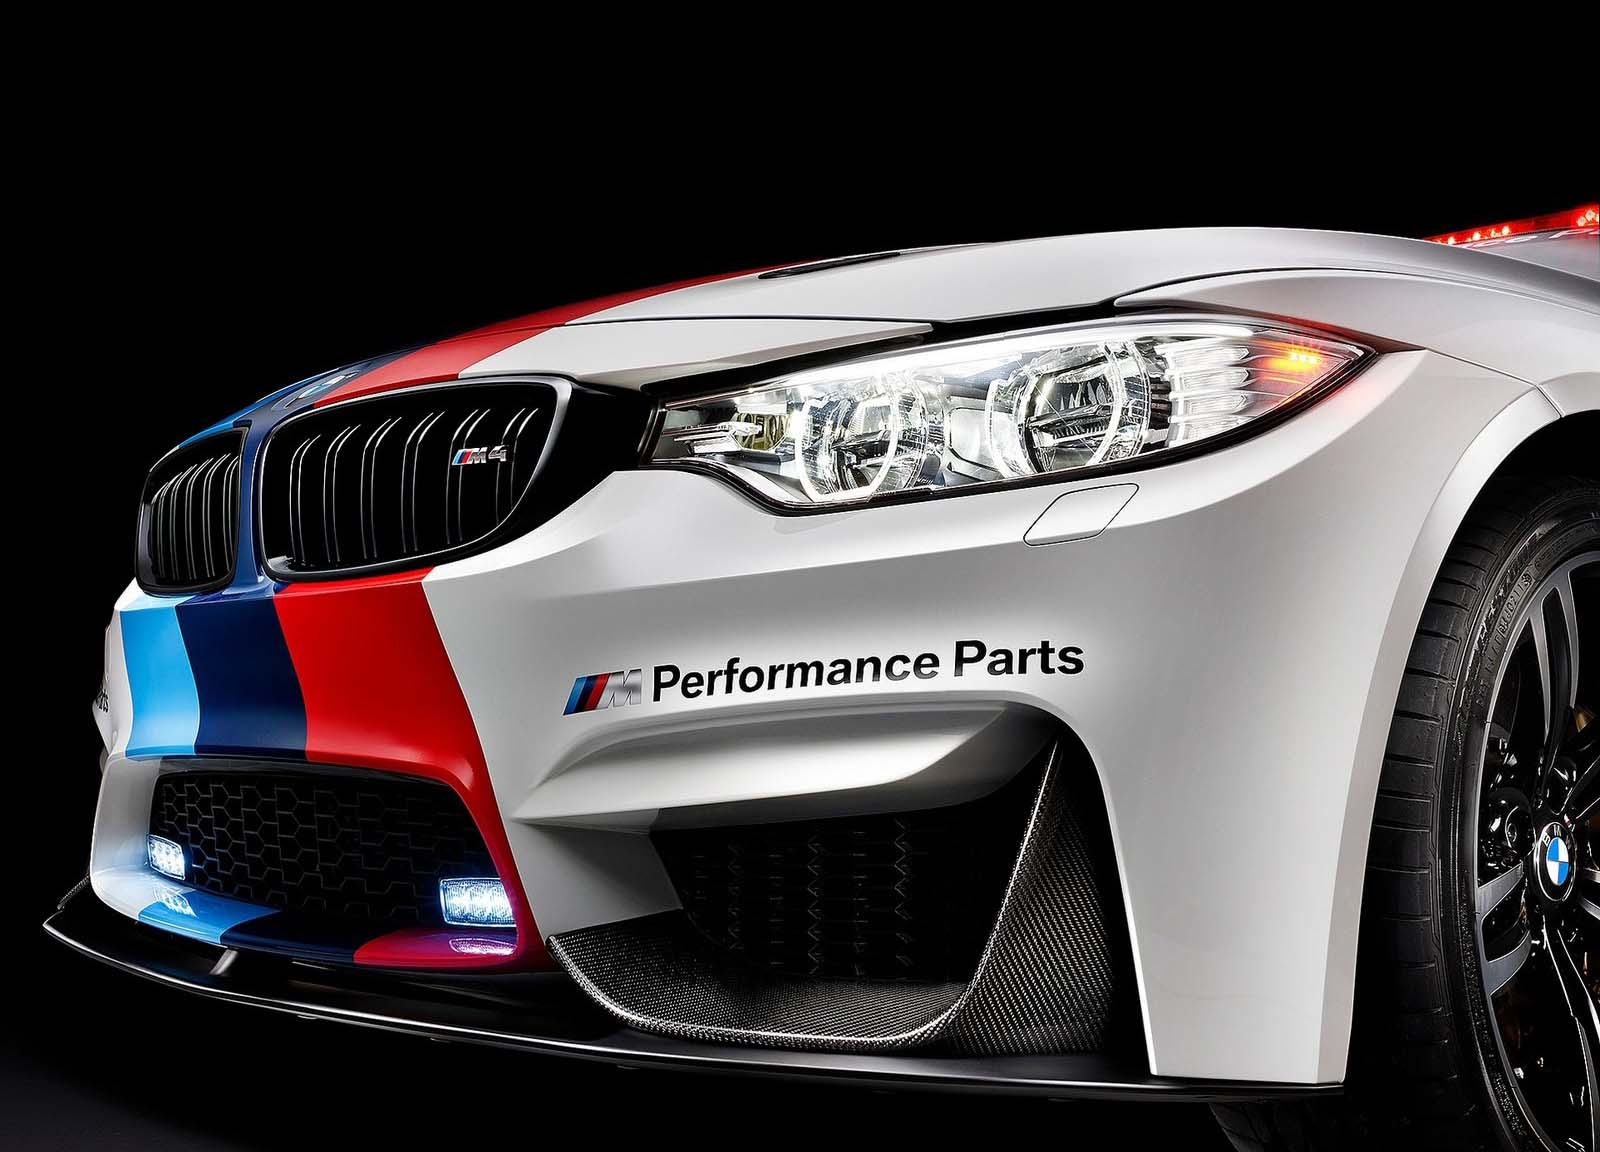 2014 BMW M4 Coupe MotoGP Safety Car | Future cars model